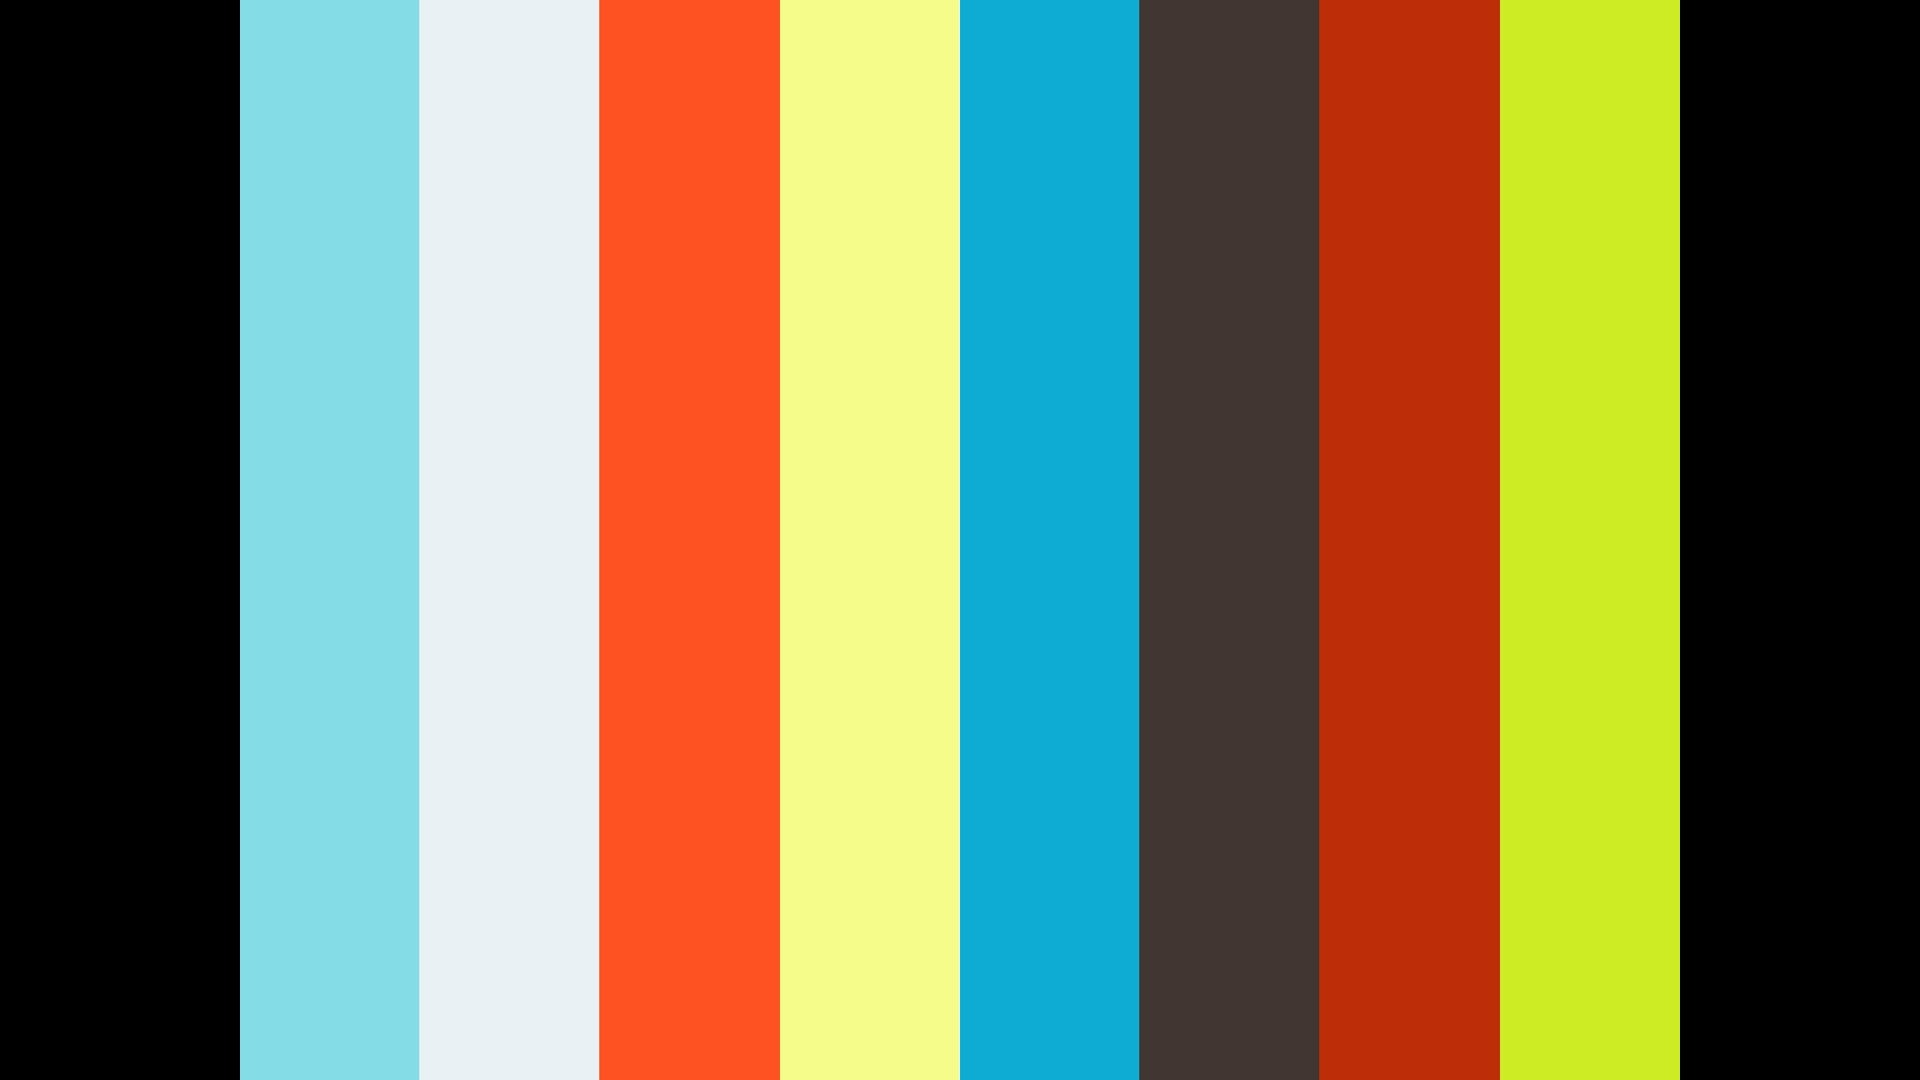 Behind the Lens: Sony E PZ 18-110mm Zoom